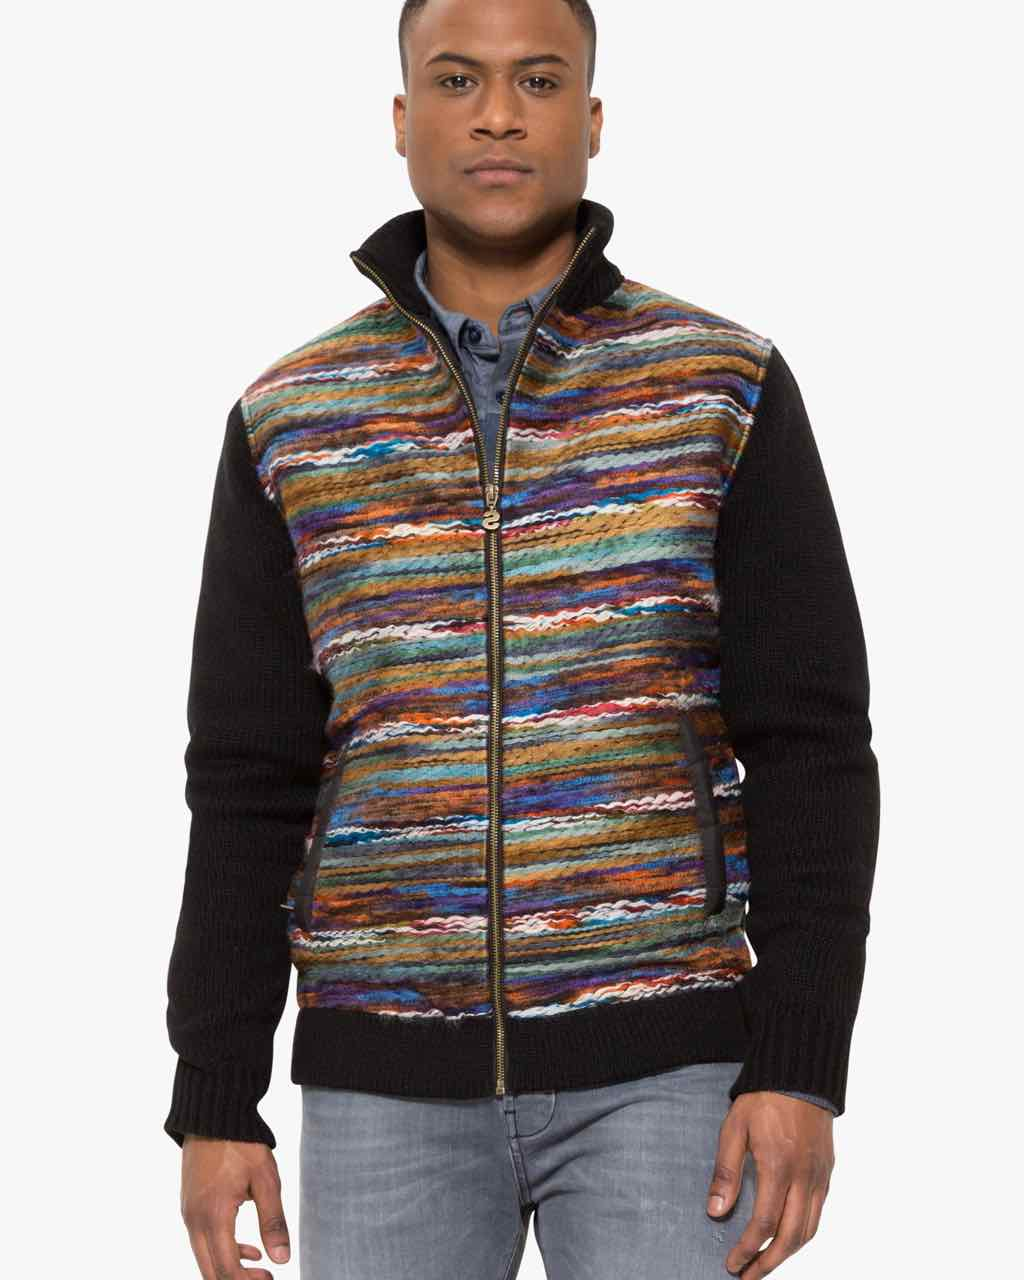 17WMJF13_2000 Desigual Men Sweater Jacket Rocuptible Buy Online